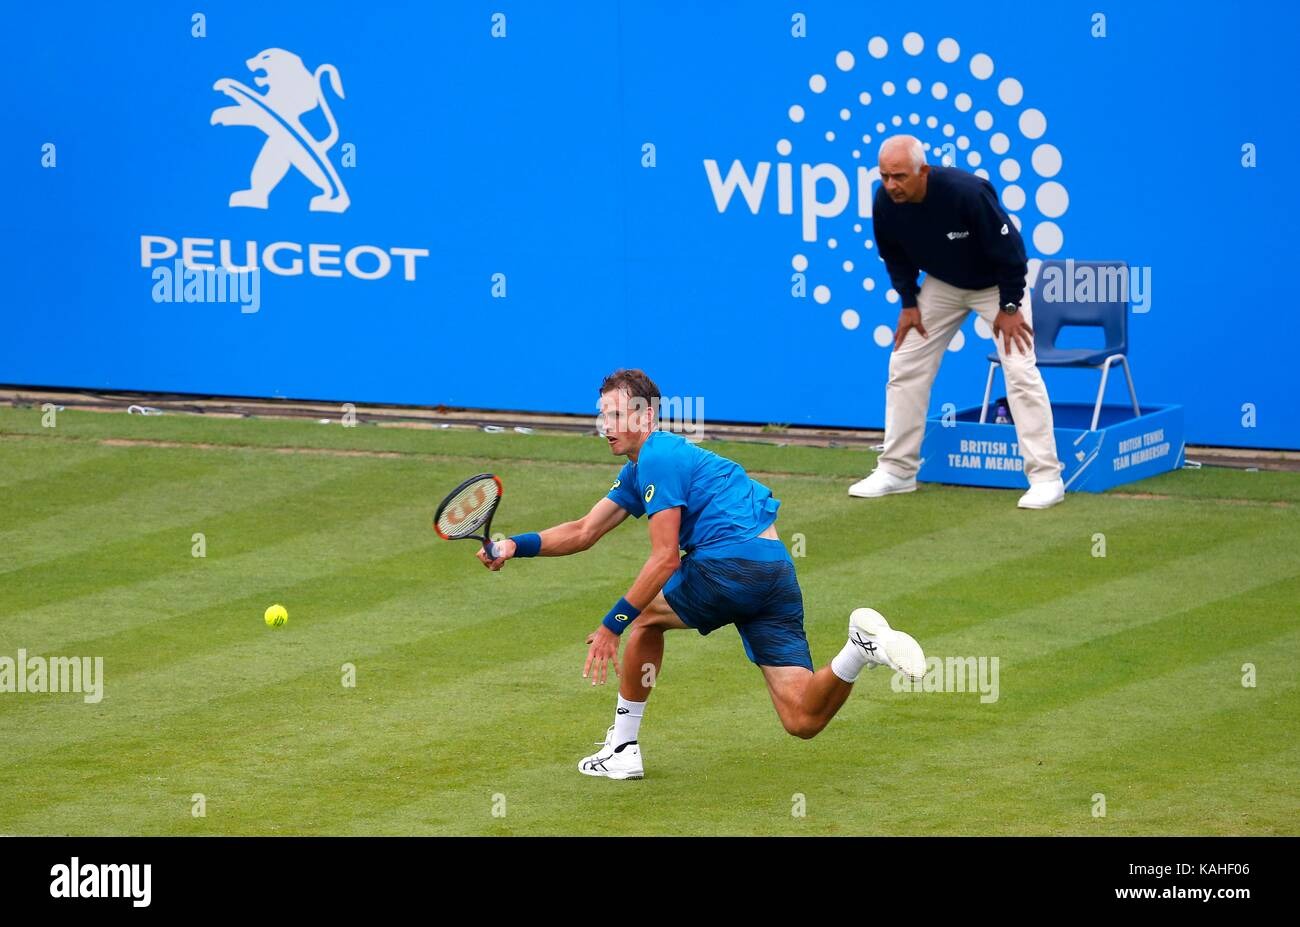 Vasek Pospisil of Canada in action against Novak Djokovic of Serbia on day six of the Aegon International at Devonshire - Stock Image